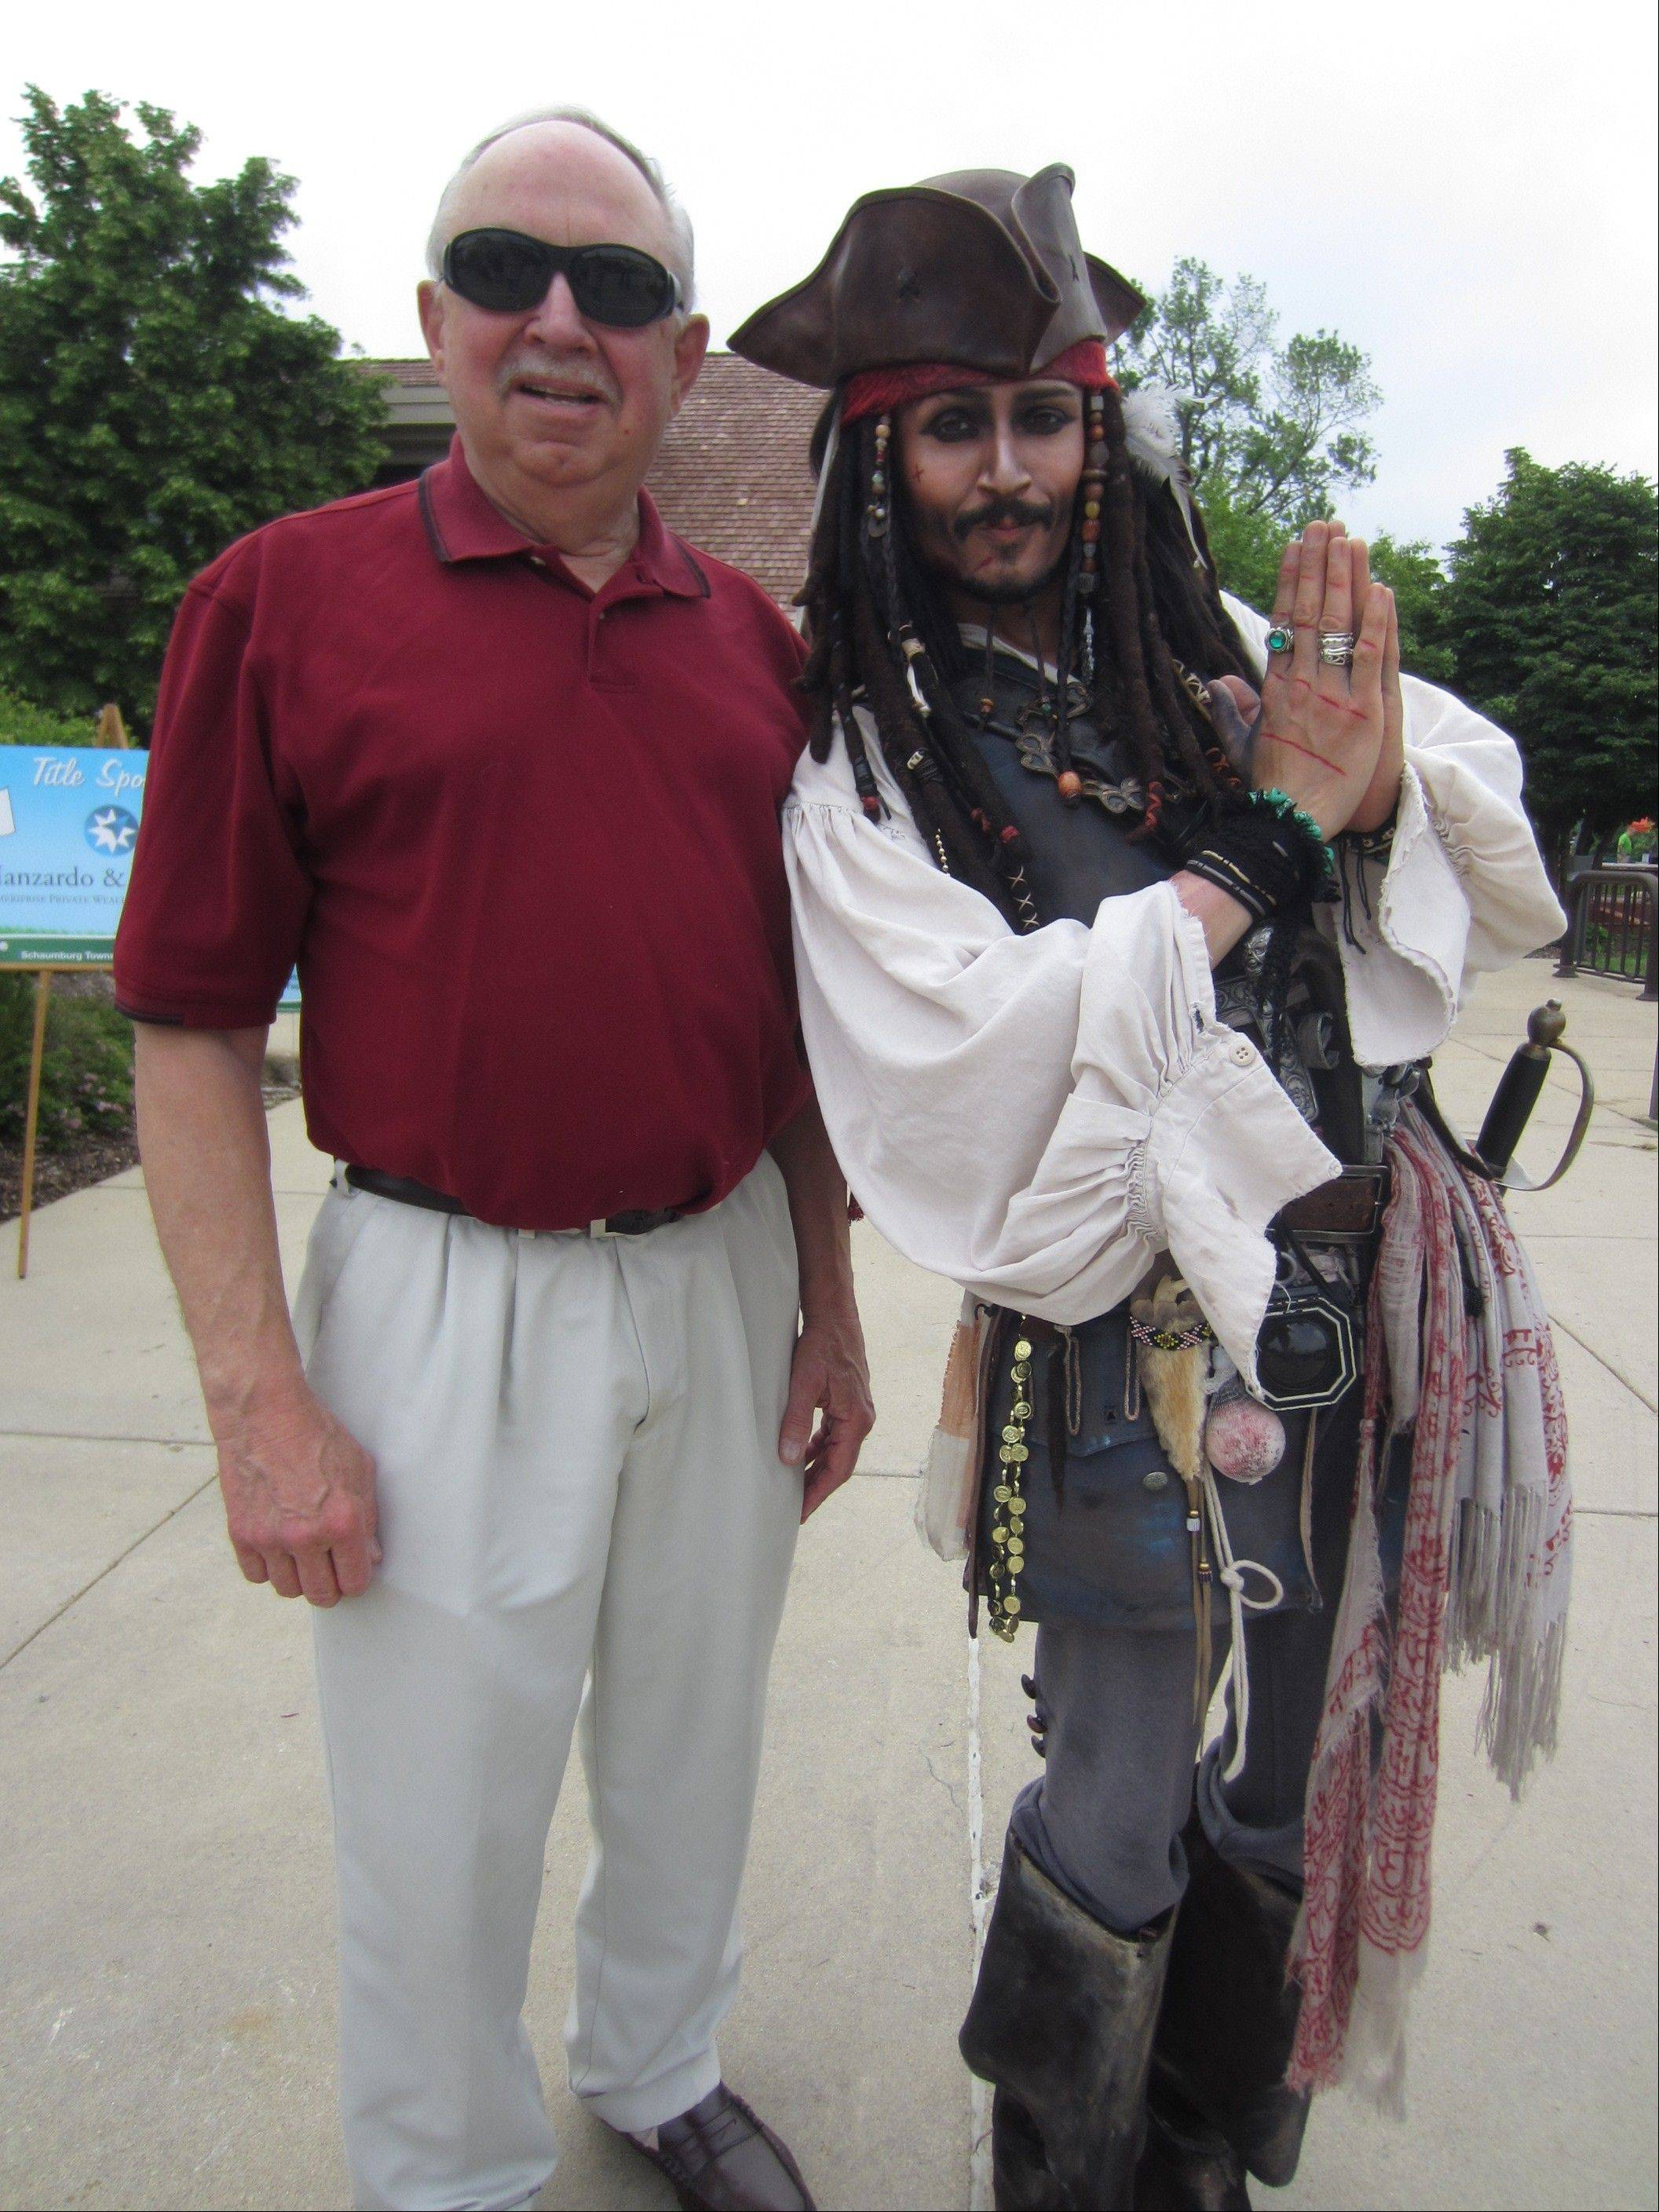 Schaumburg Mayor Al Larson and Capt. Jack Sparrow impersonator Rick Aspen greeted golfers during the School District 54 Foundation's 16th annual golf outing at Schaumburg Golf Club.